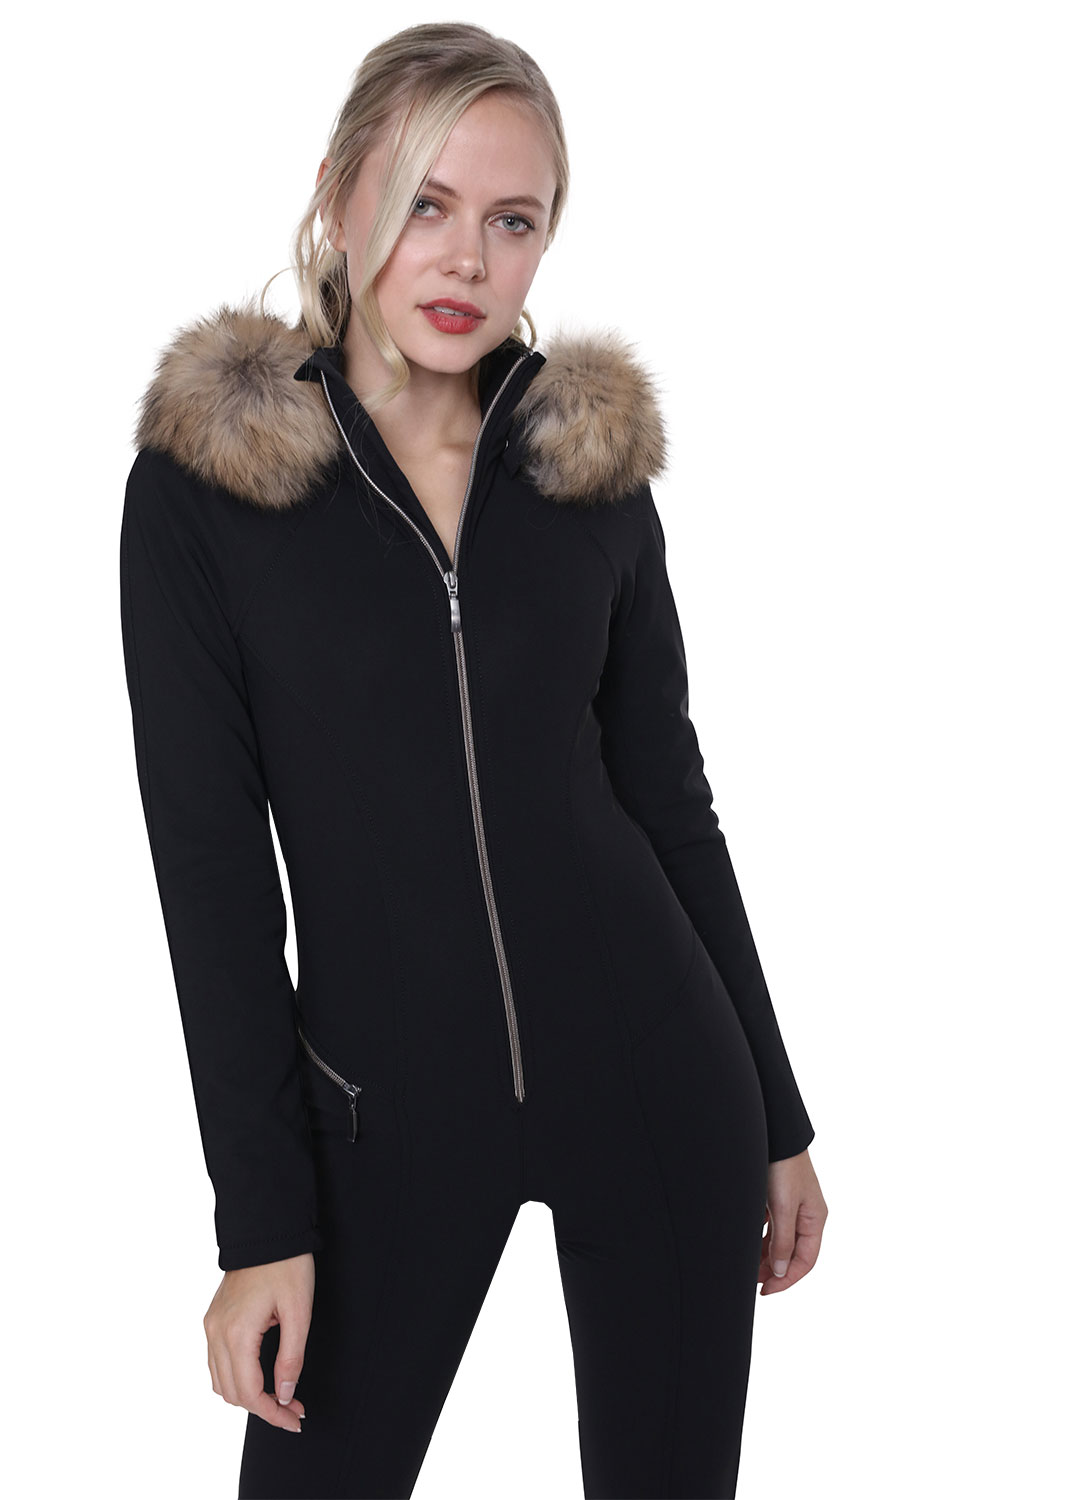 One Piece ski suits for Women